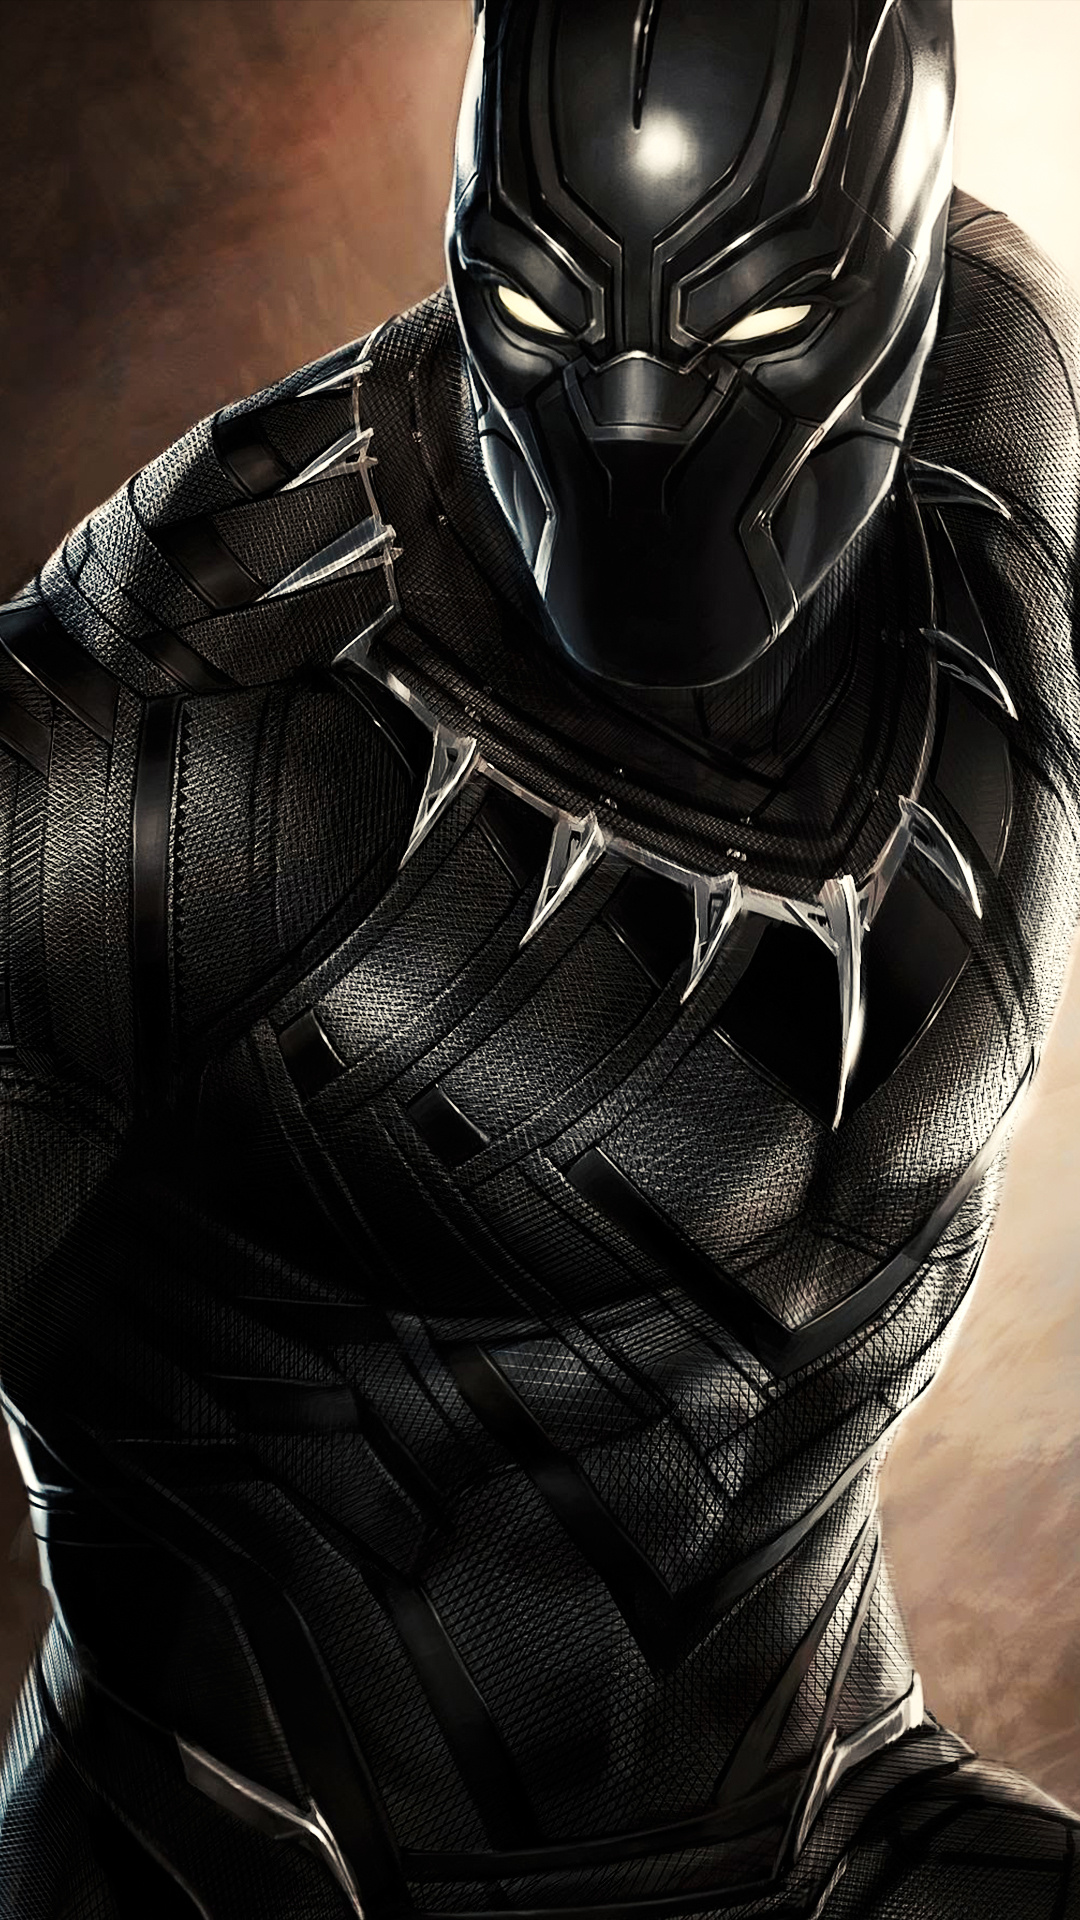 Black Panther Wallpaper For Iphone X 8 7 6 Free Download On